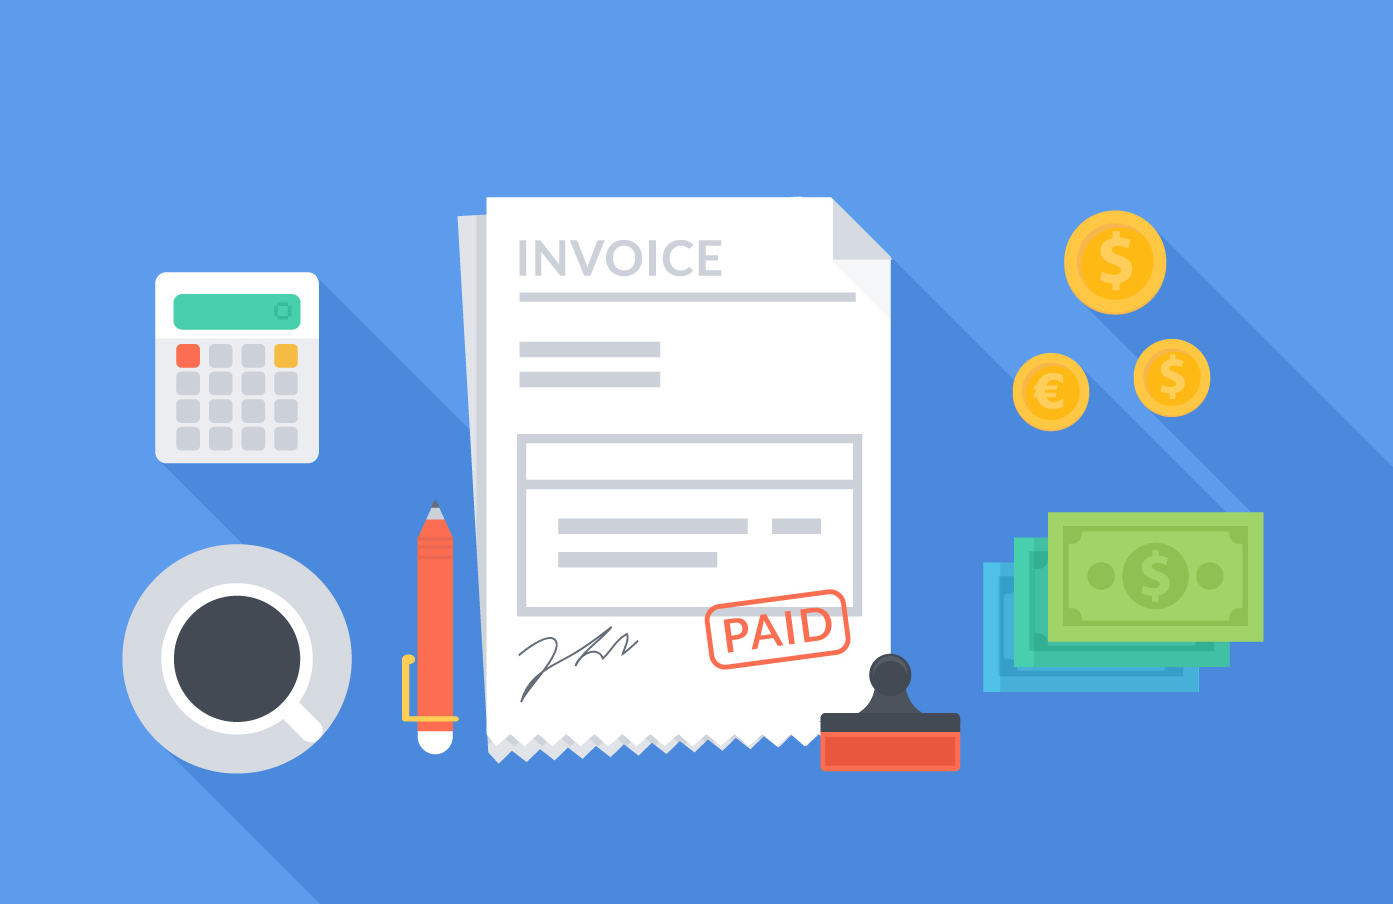 free vector invoice concept - Account Payable Management